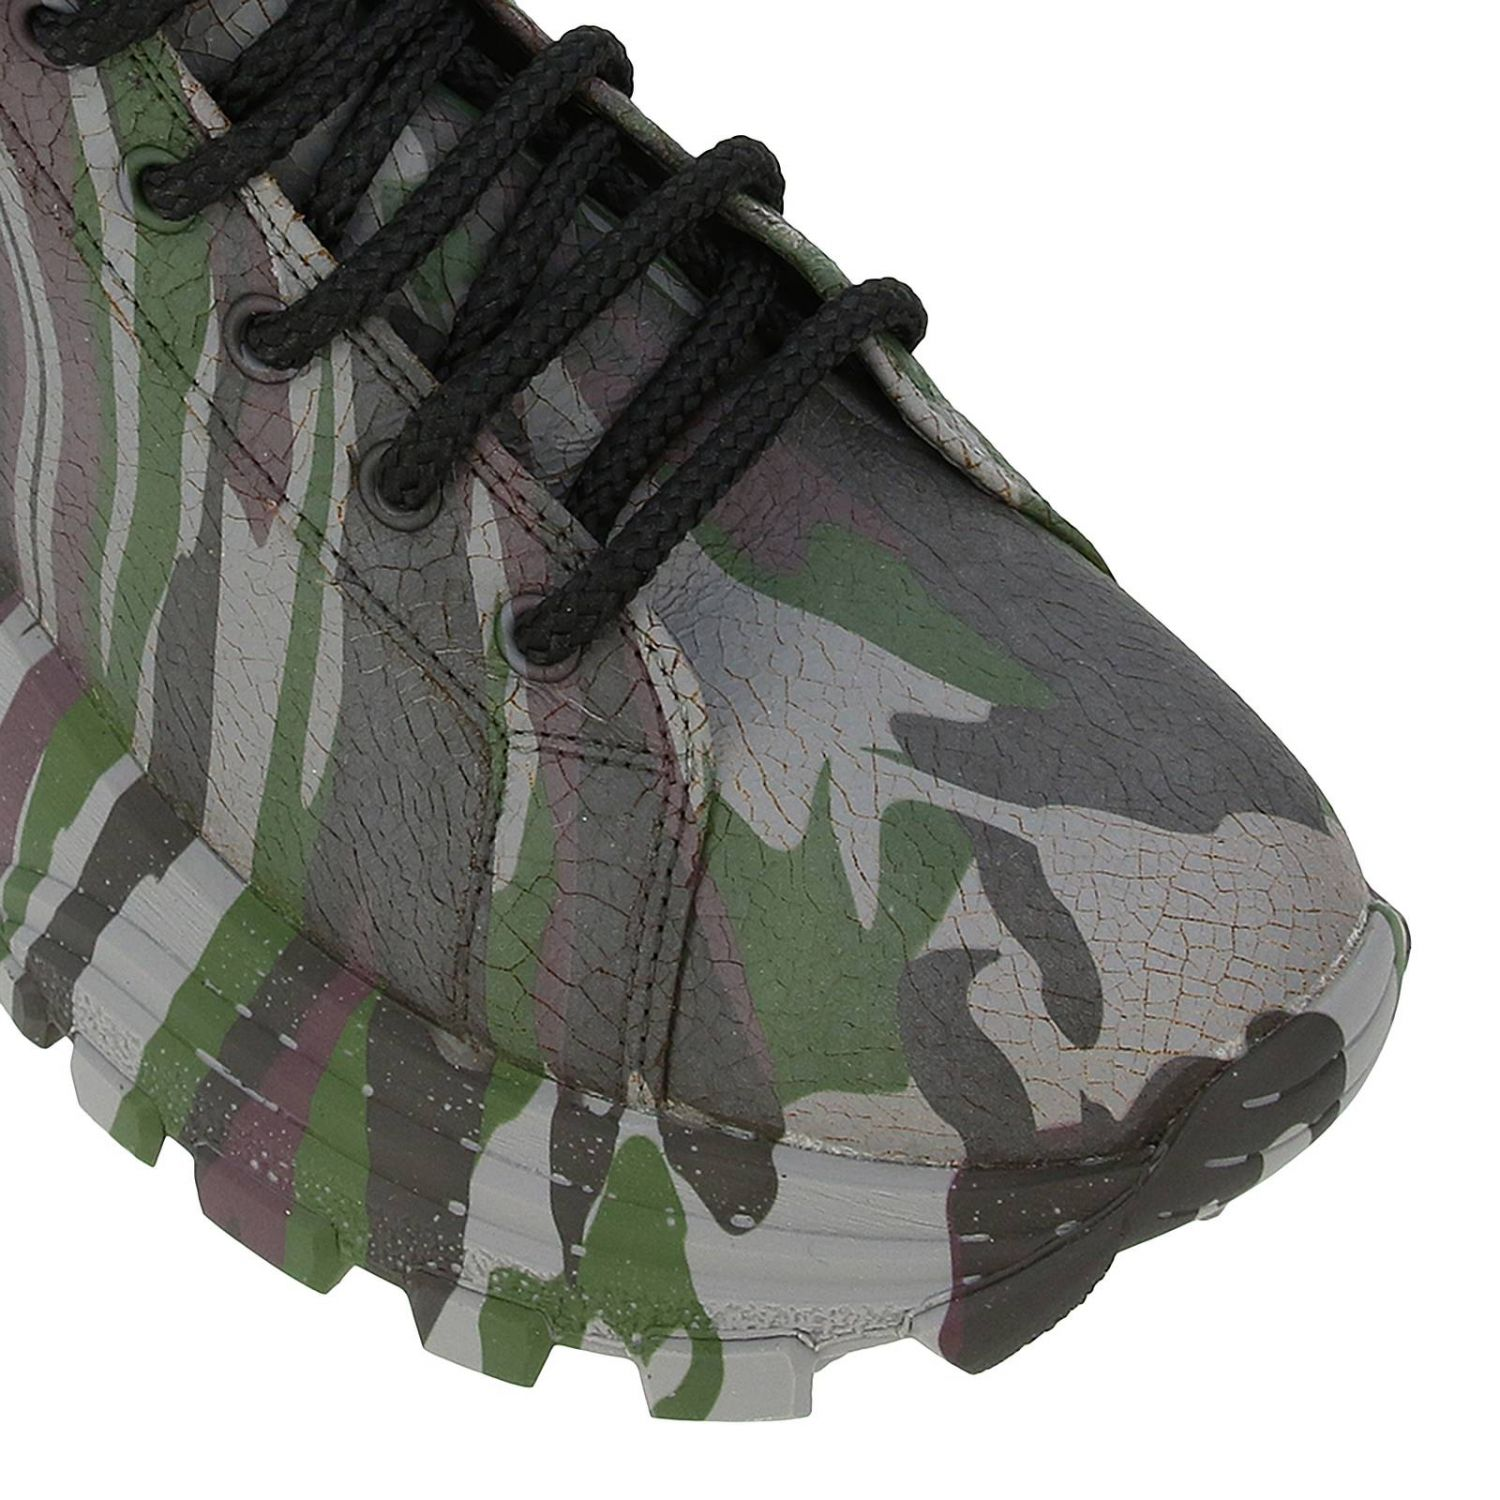 Miu Miu sneakers in camouflage printed leather with combat sole military 4